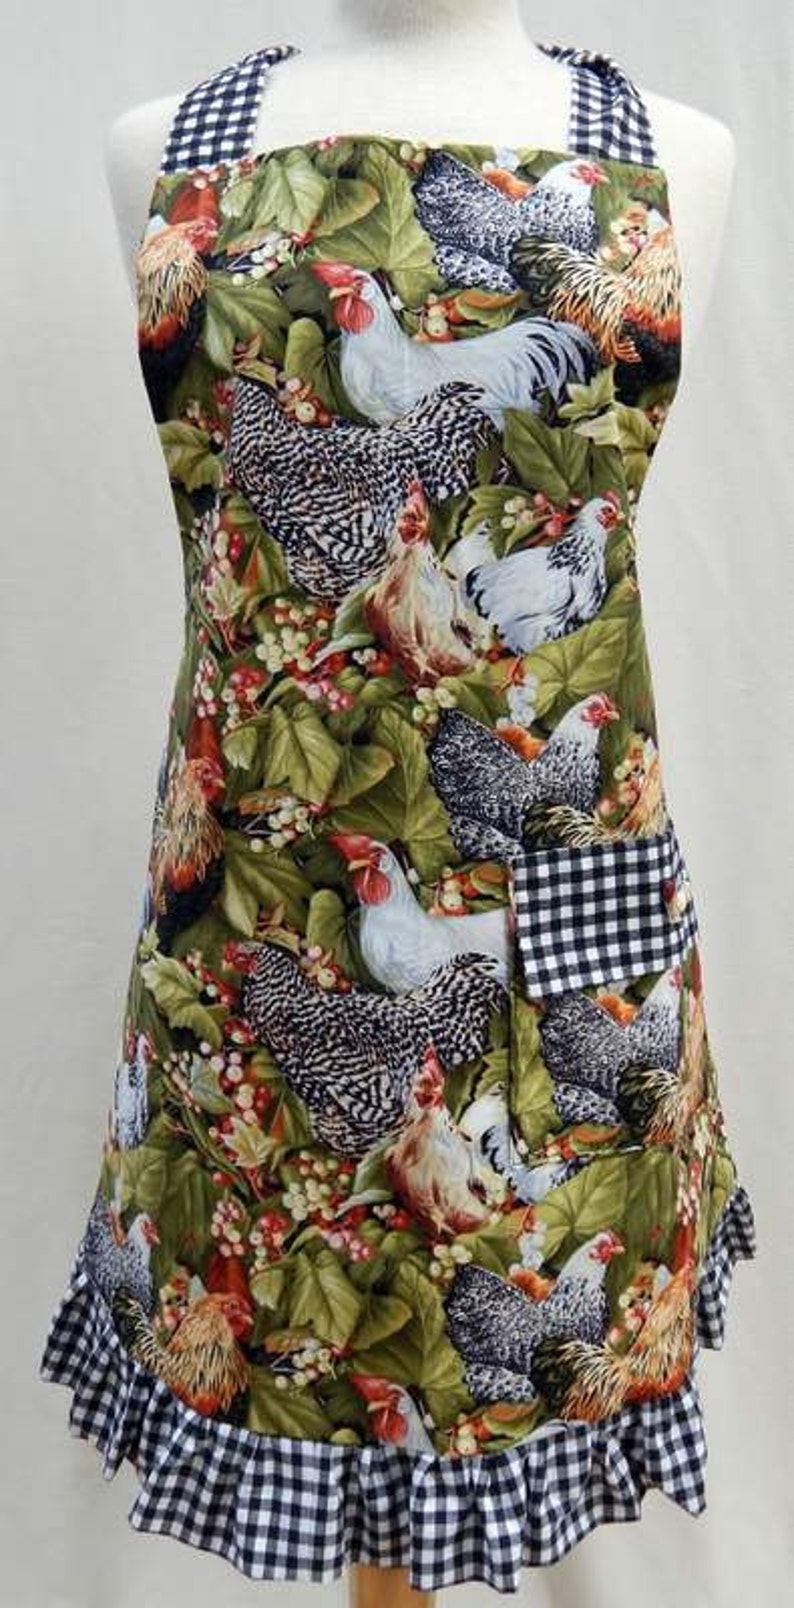 Reversible Bib Style Apron with Roosters Full Length Adult or image 0